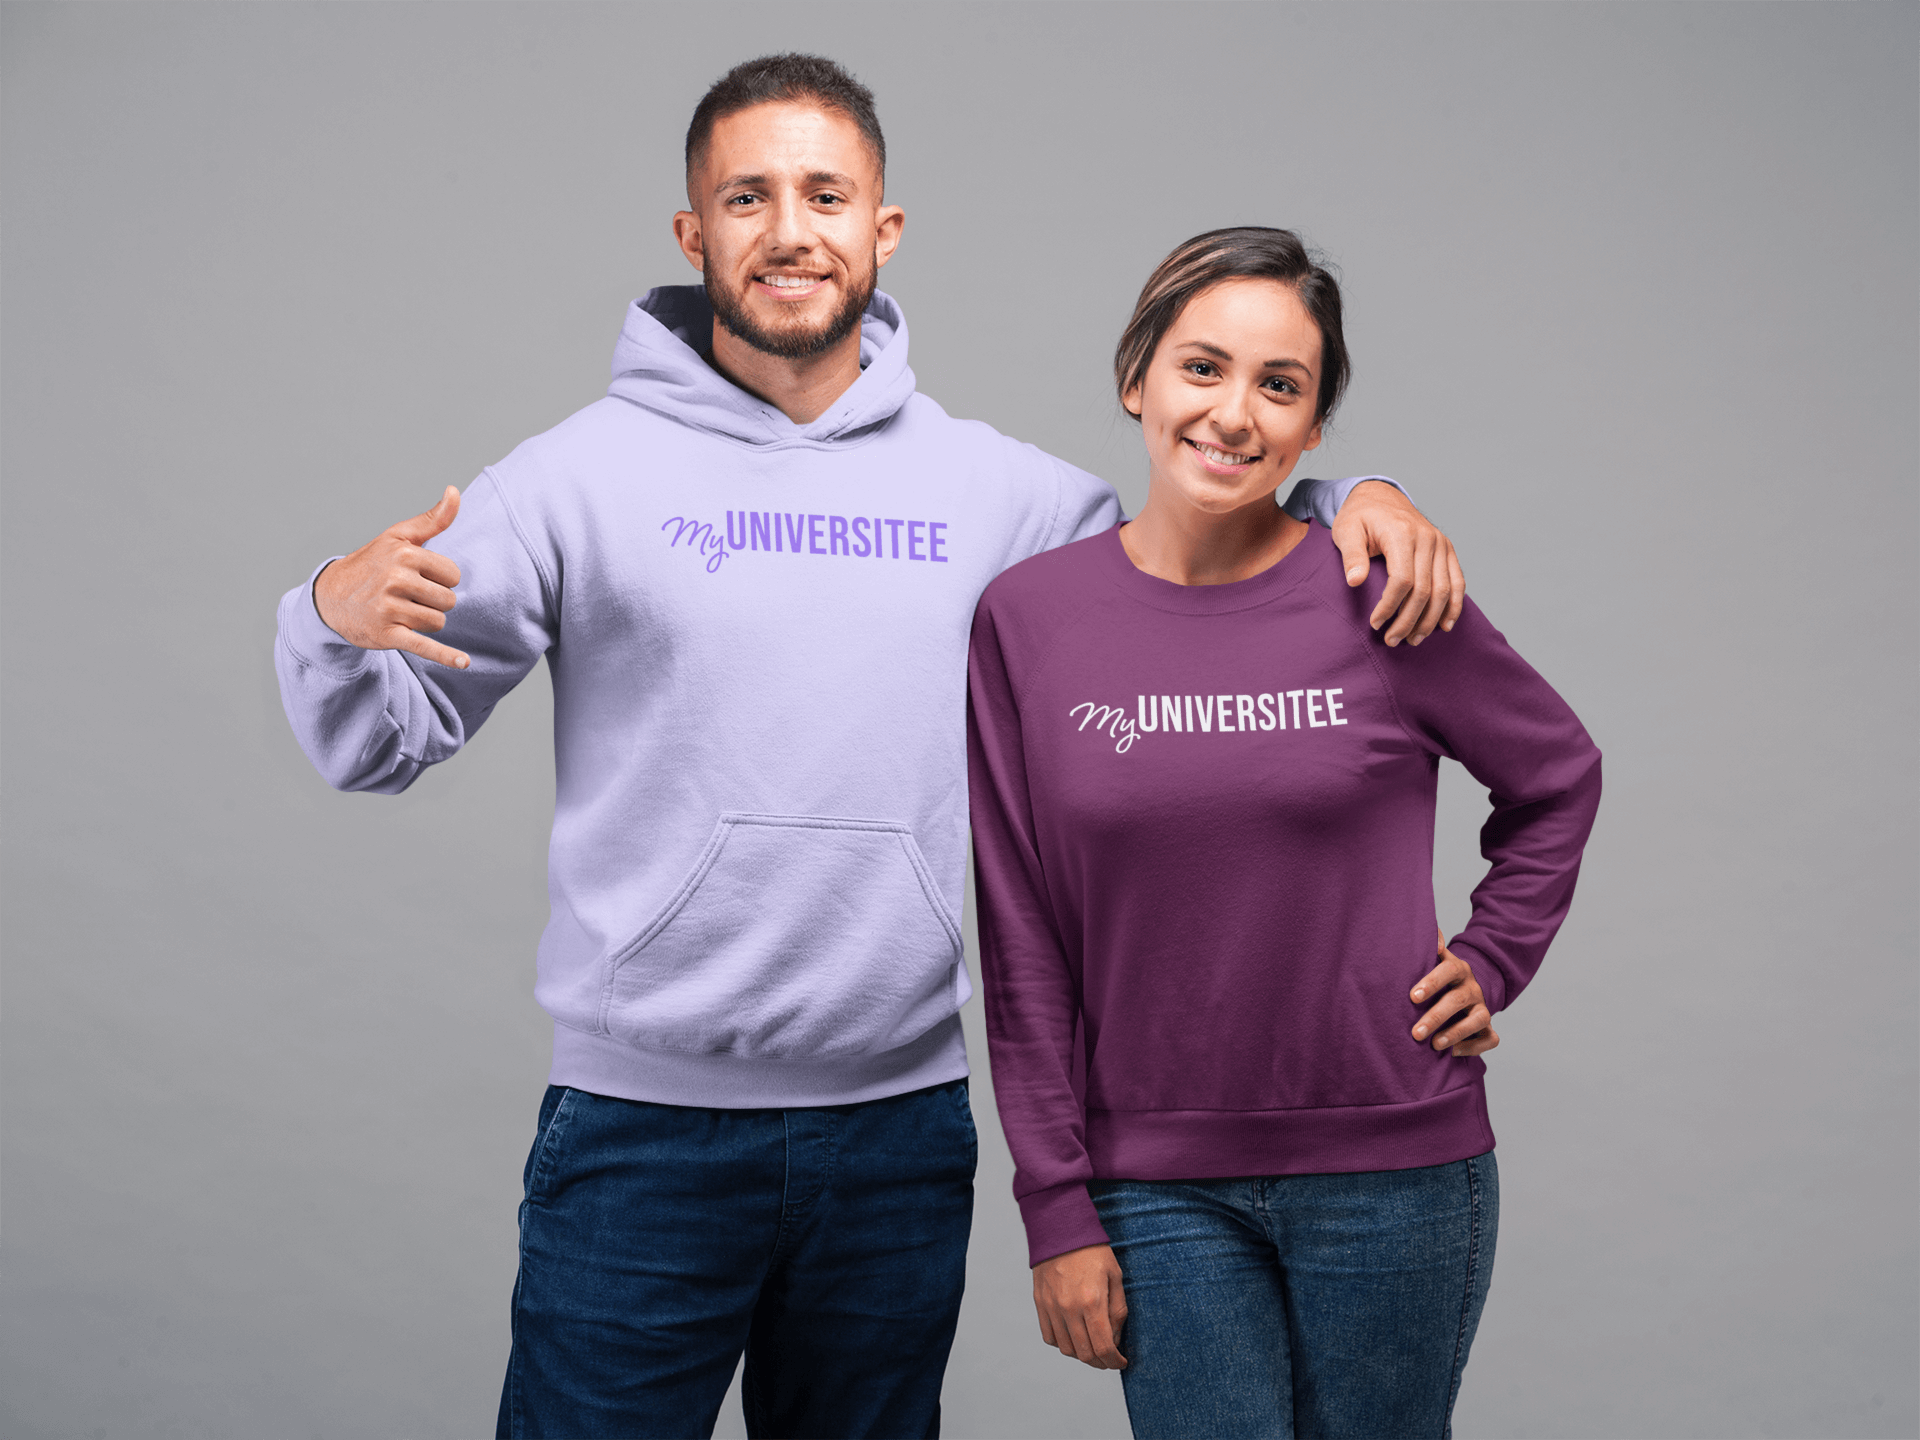 mockup-of-a-woman-wearing-a-sweatshirt-and-a-man-wearing-a-hoodie-with-an-arm-over-her-shoulder-22352